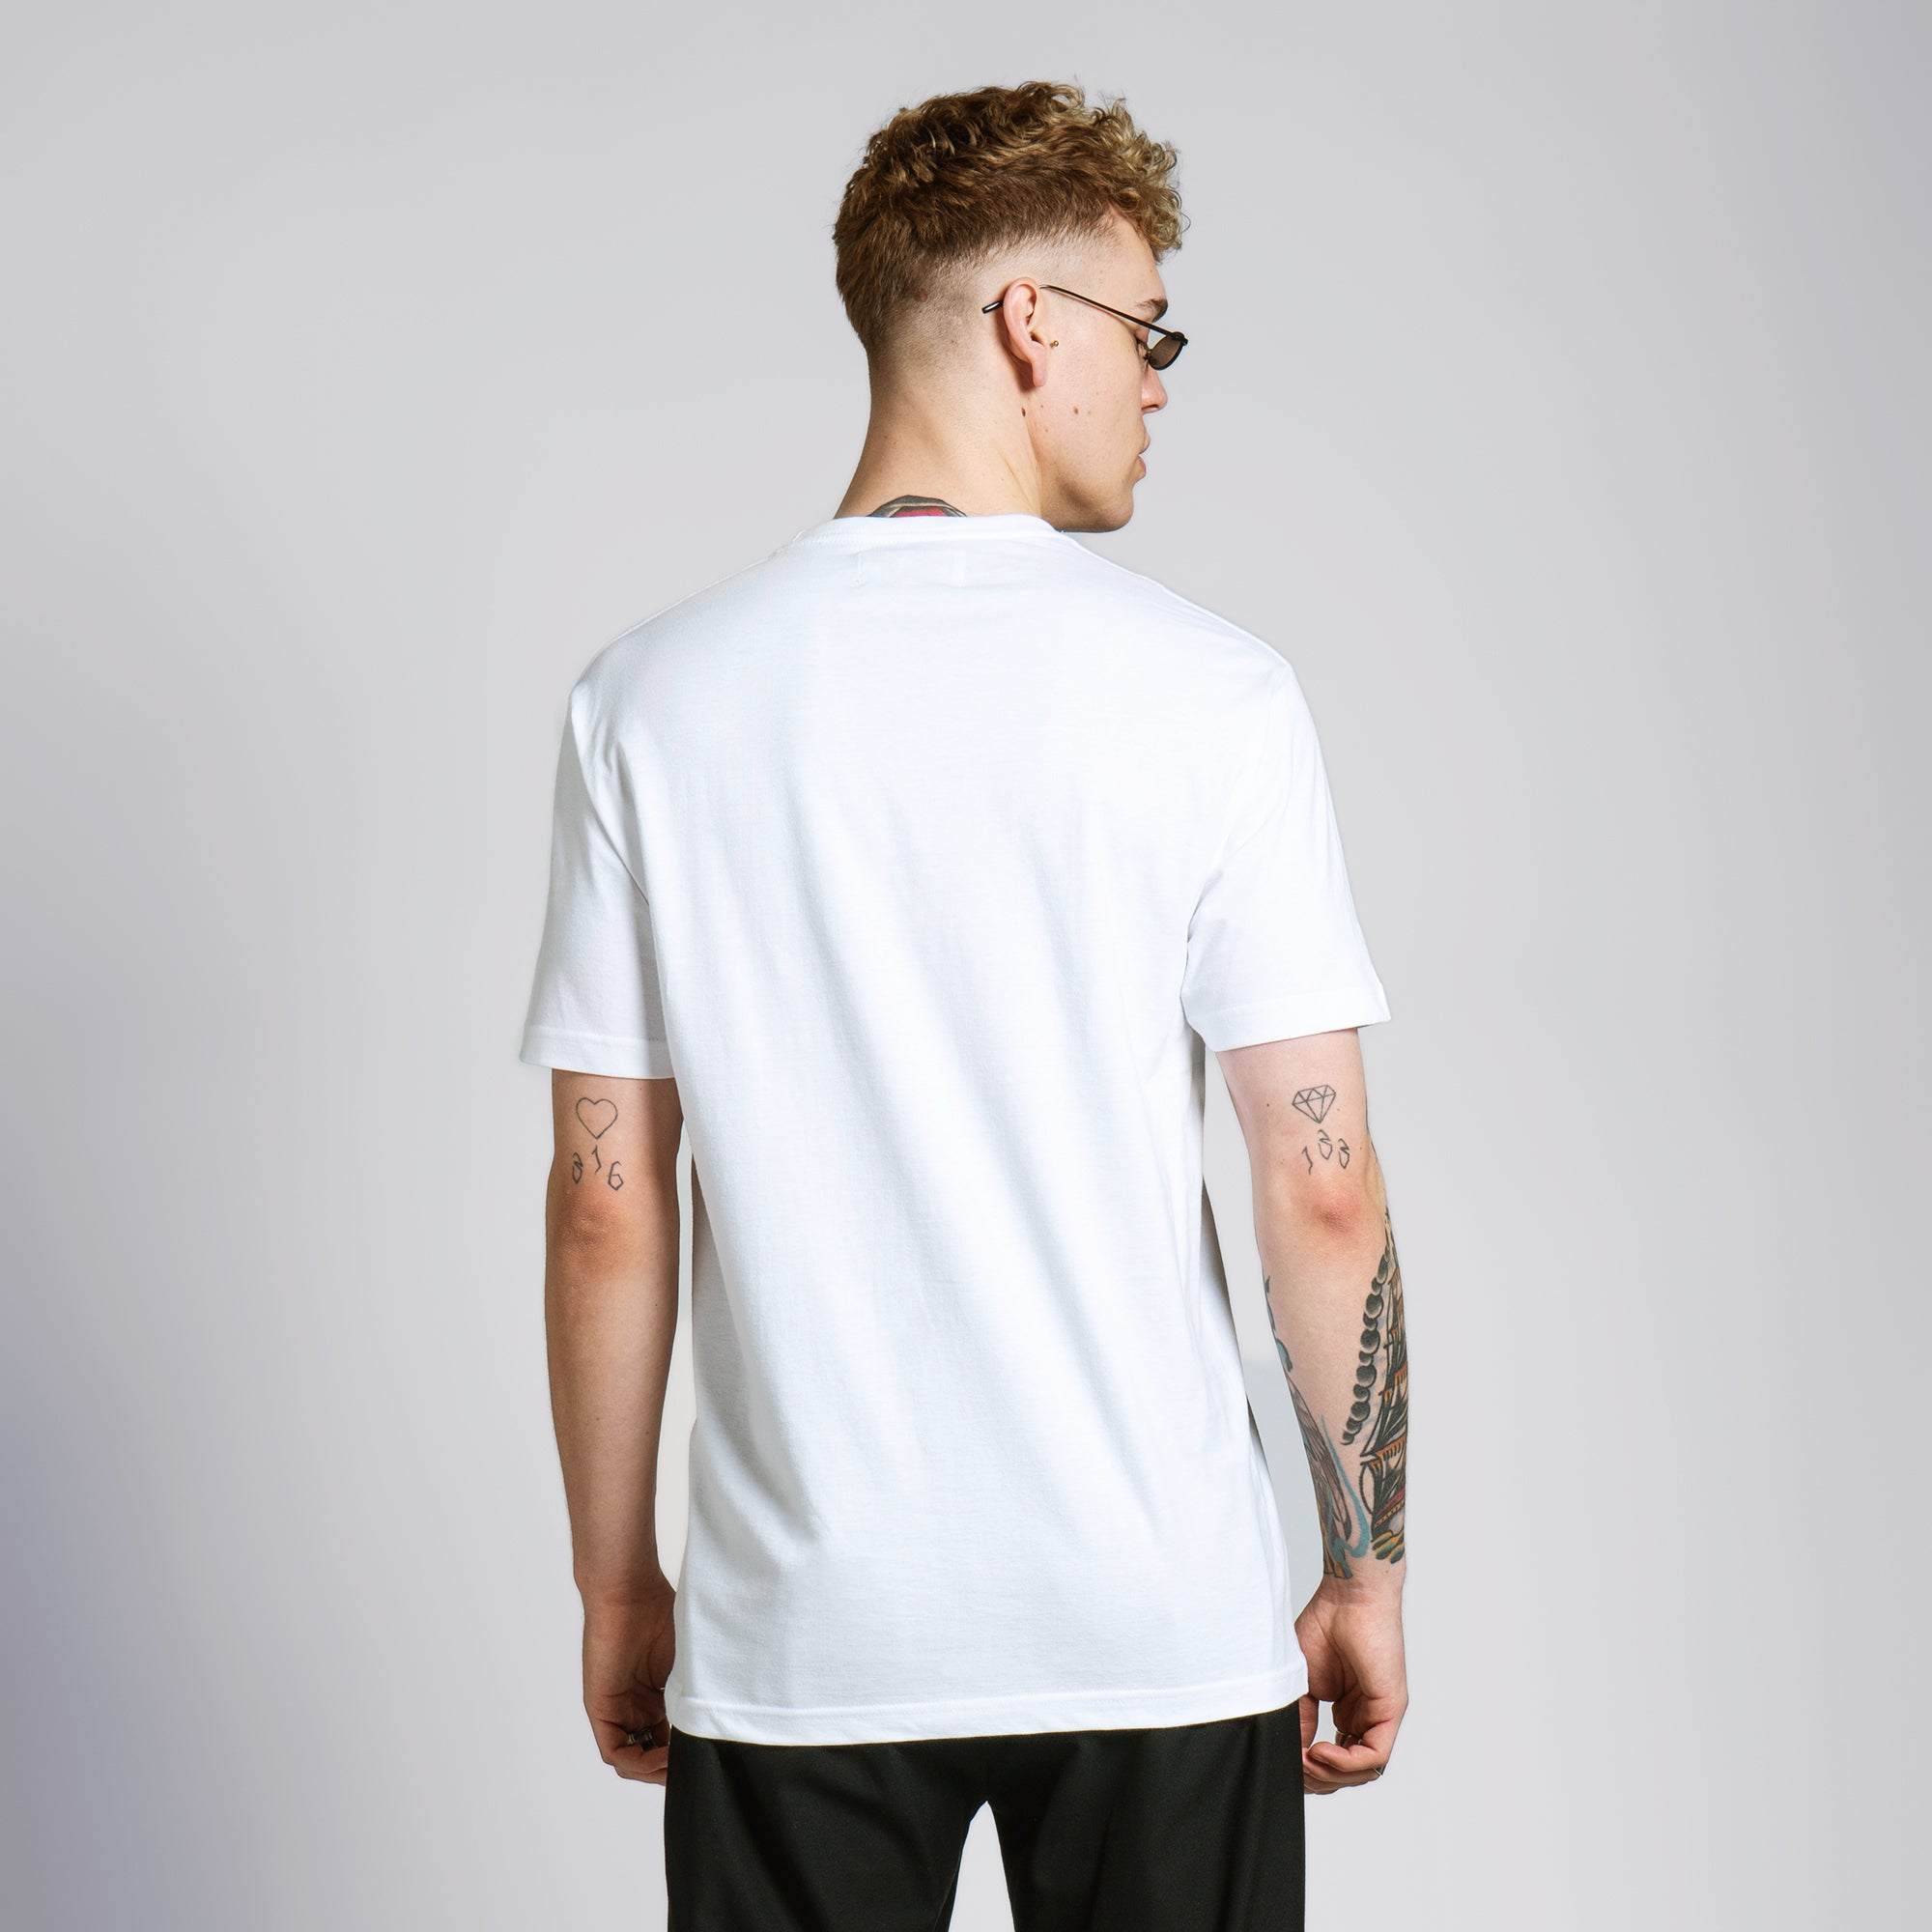 COLORIZE T-SHIRT - WHITE